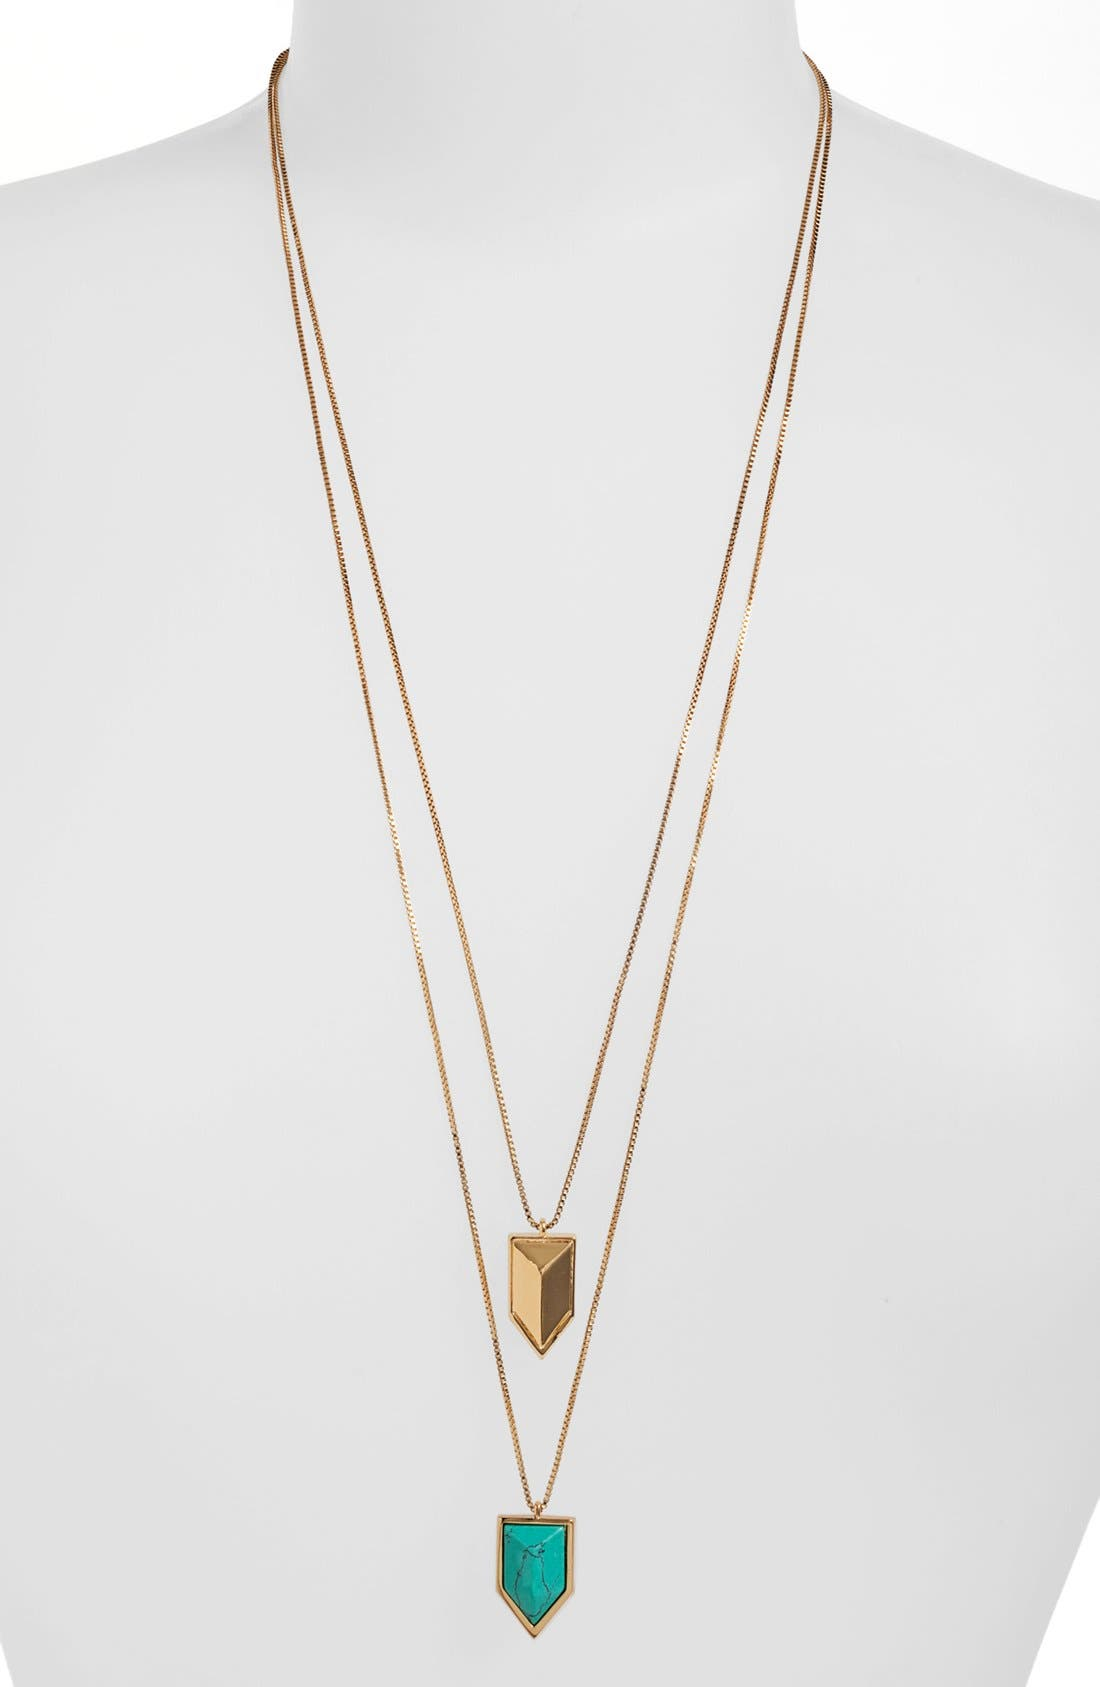 Alternate Image 1 Selected - Vince Camuto 'Clearview' Double Pendant Necklace (Nordstrom Exclusive)